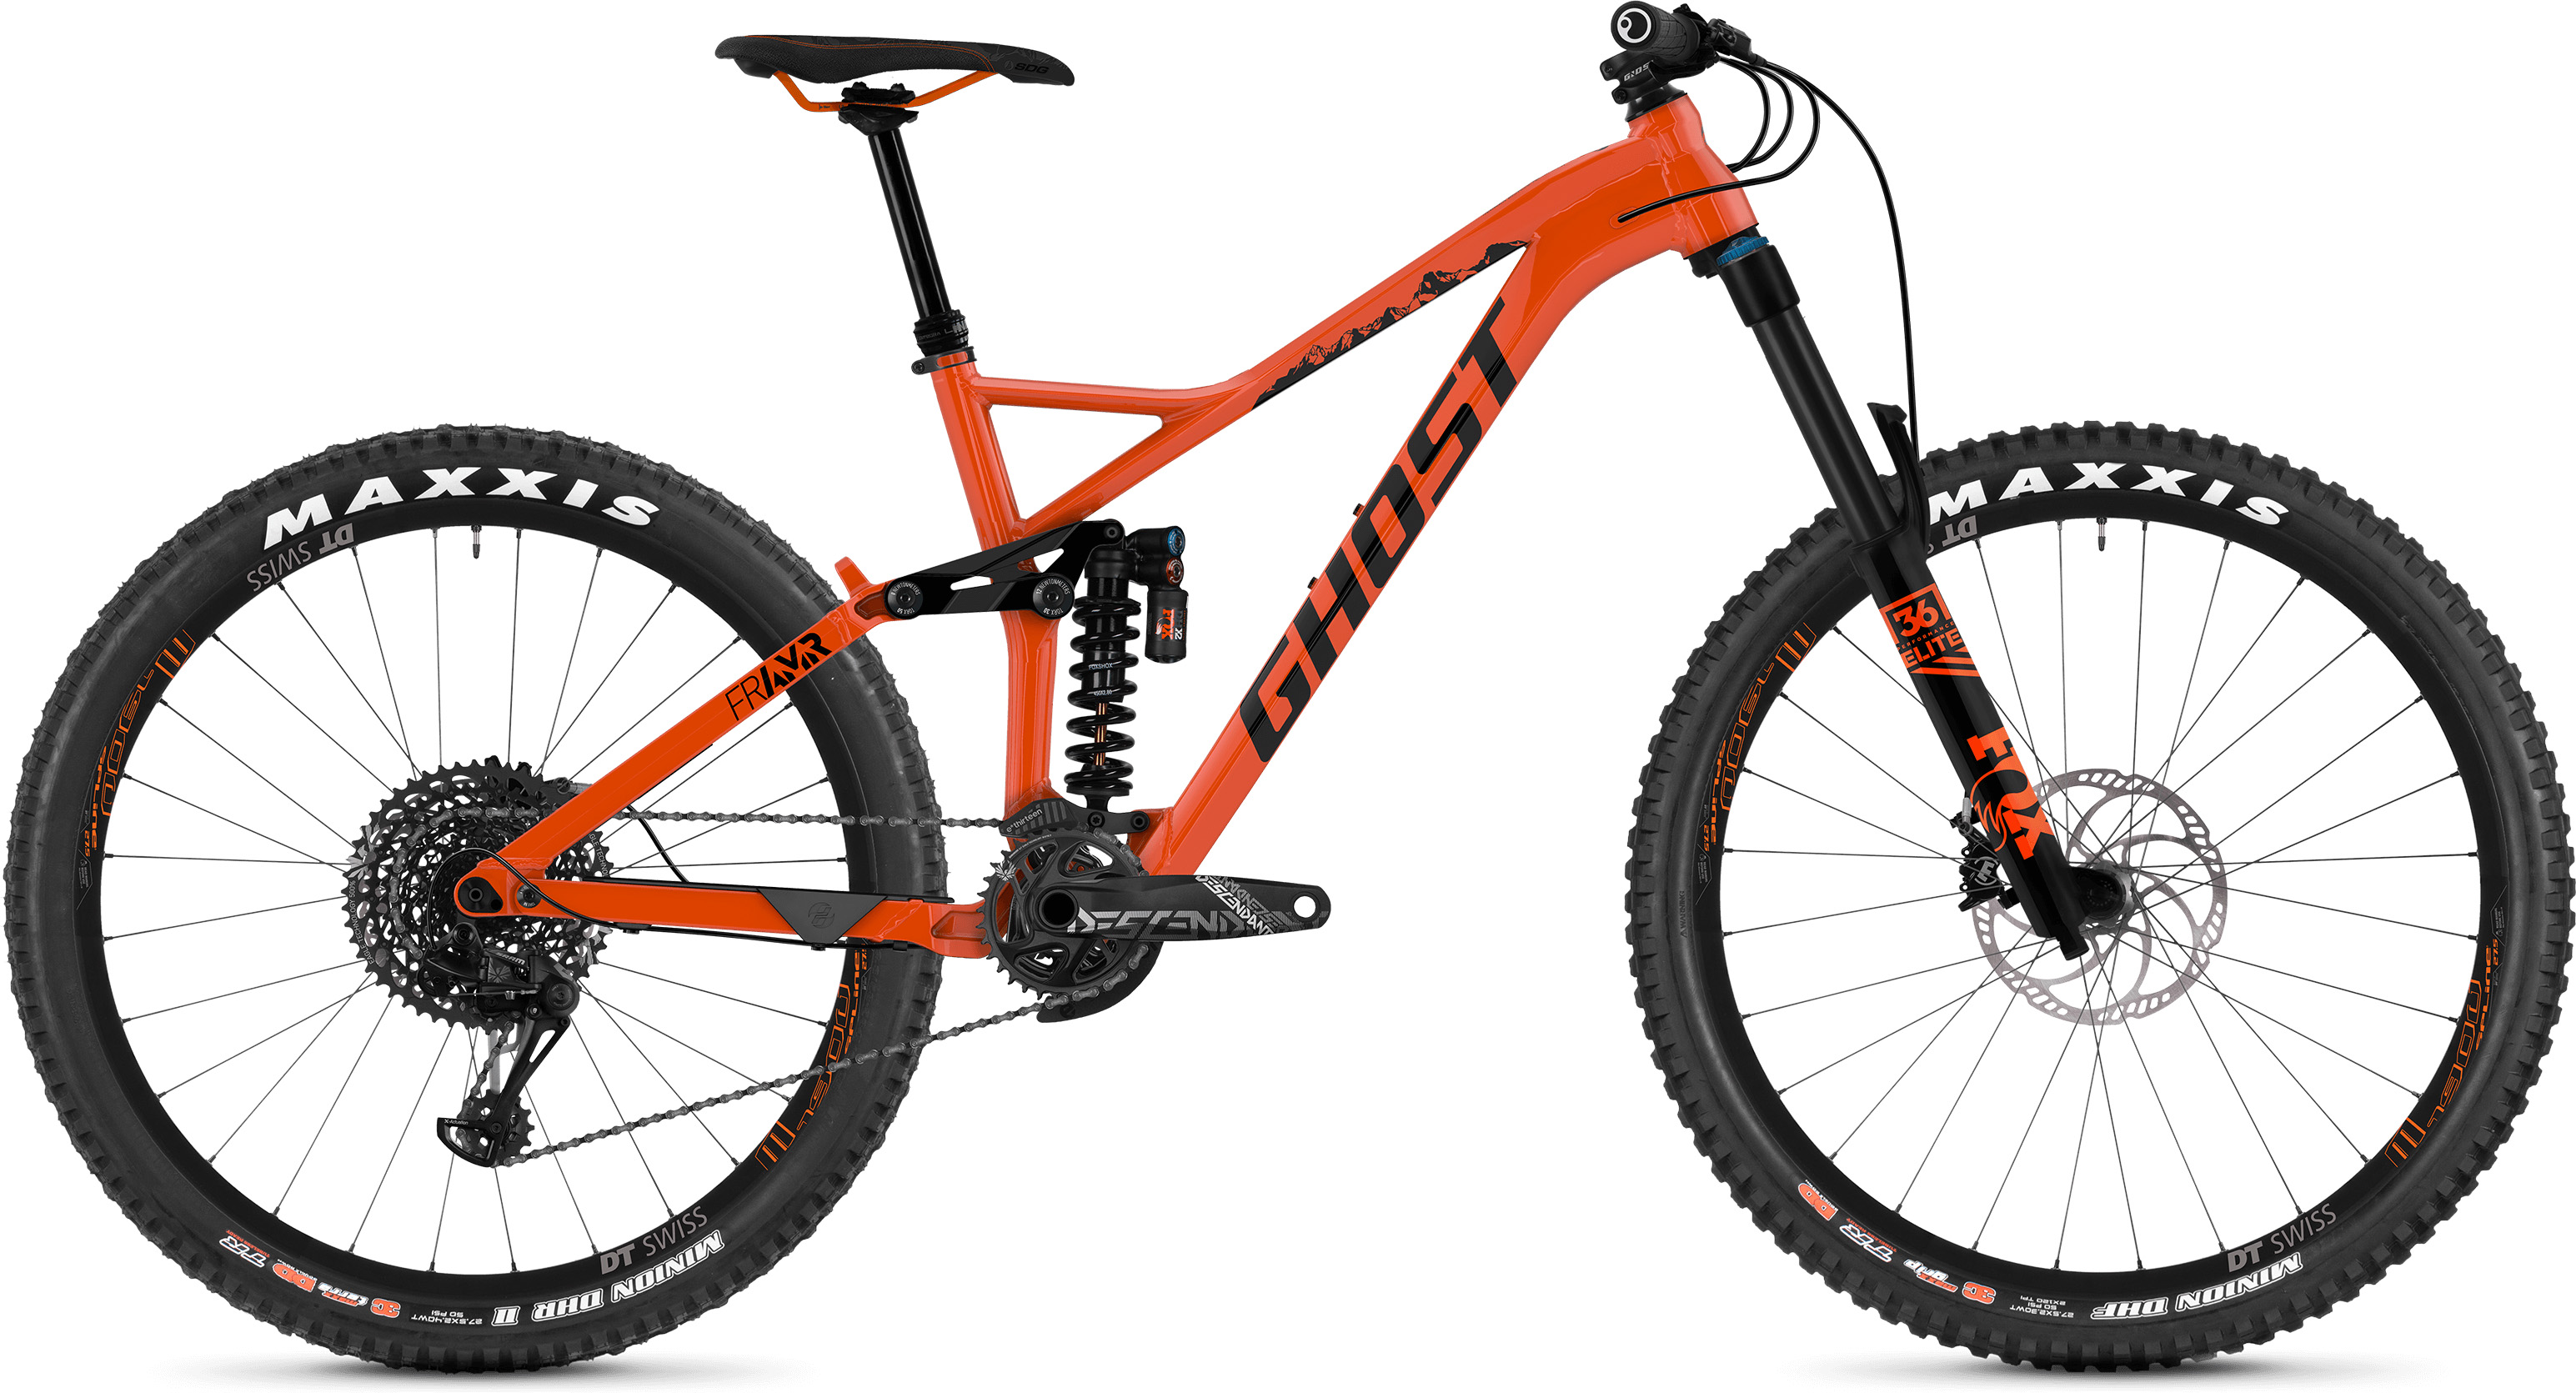 Ghost FR AMR 6.7 Fuldaffjedret mountainbike (2019) - Herre | Mountainbikes